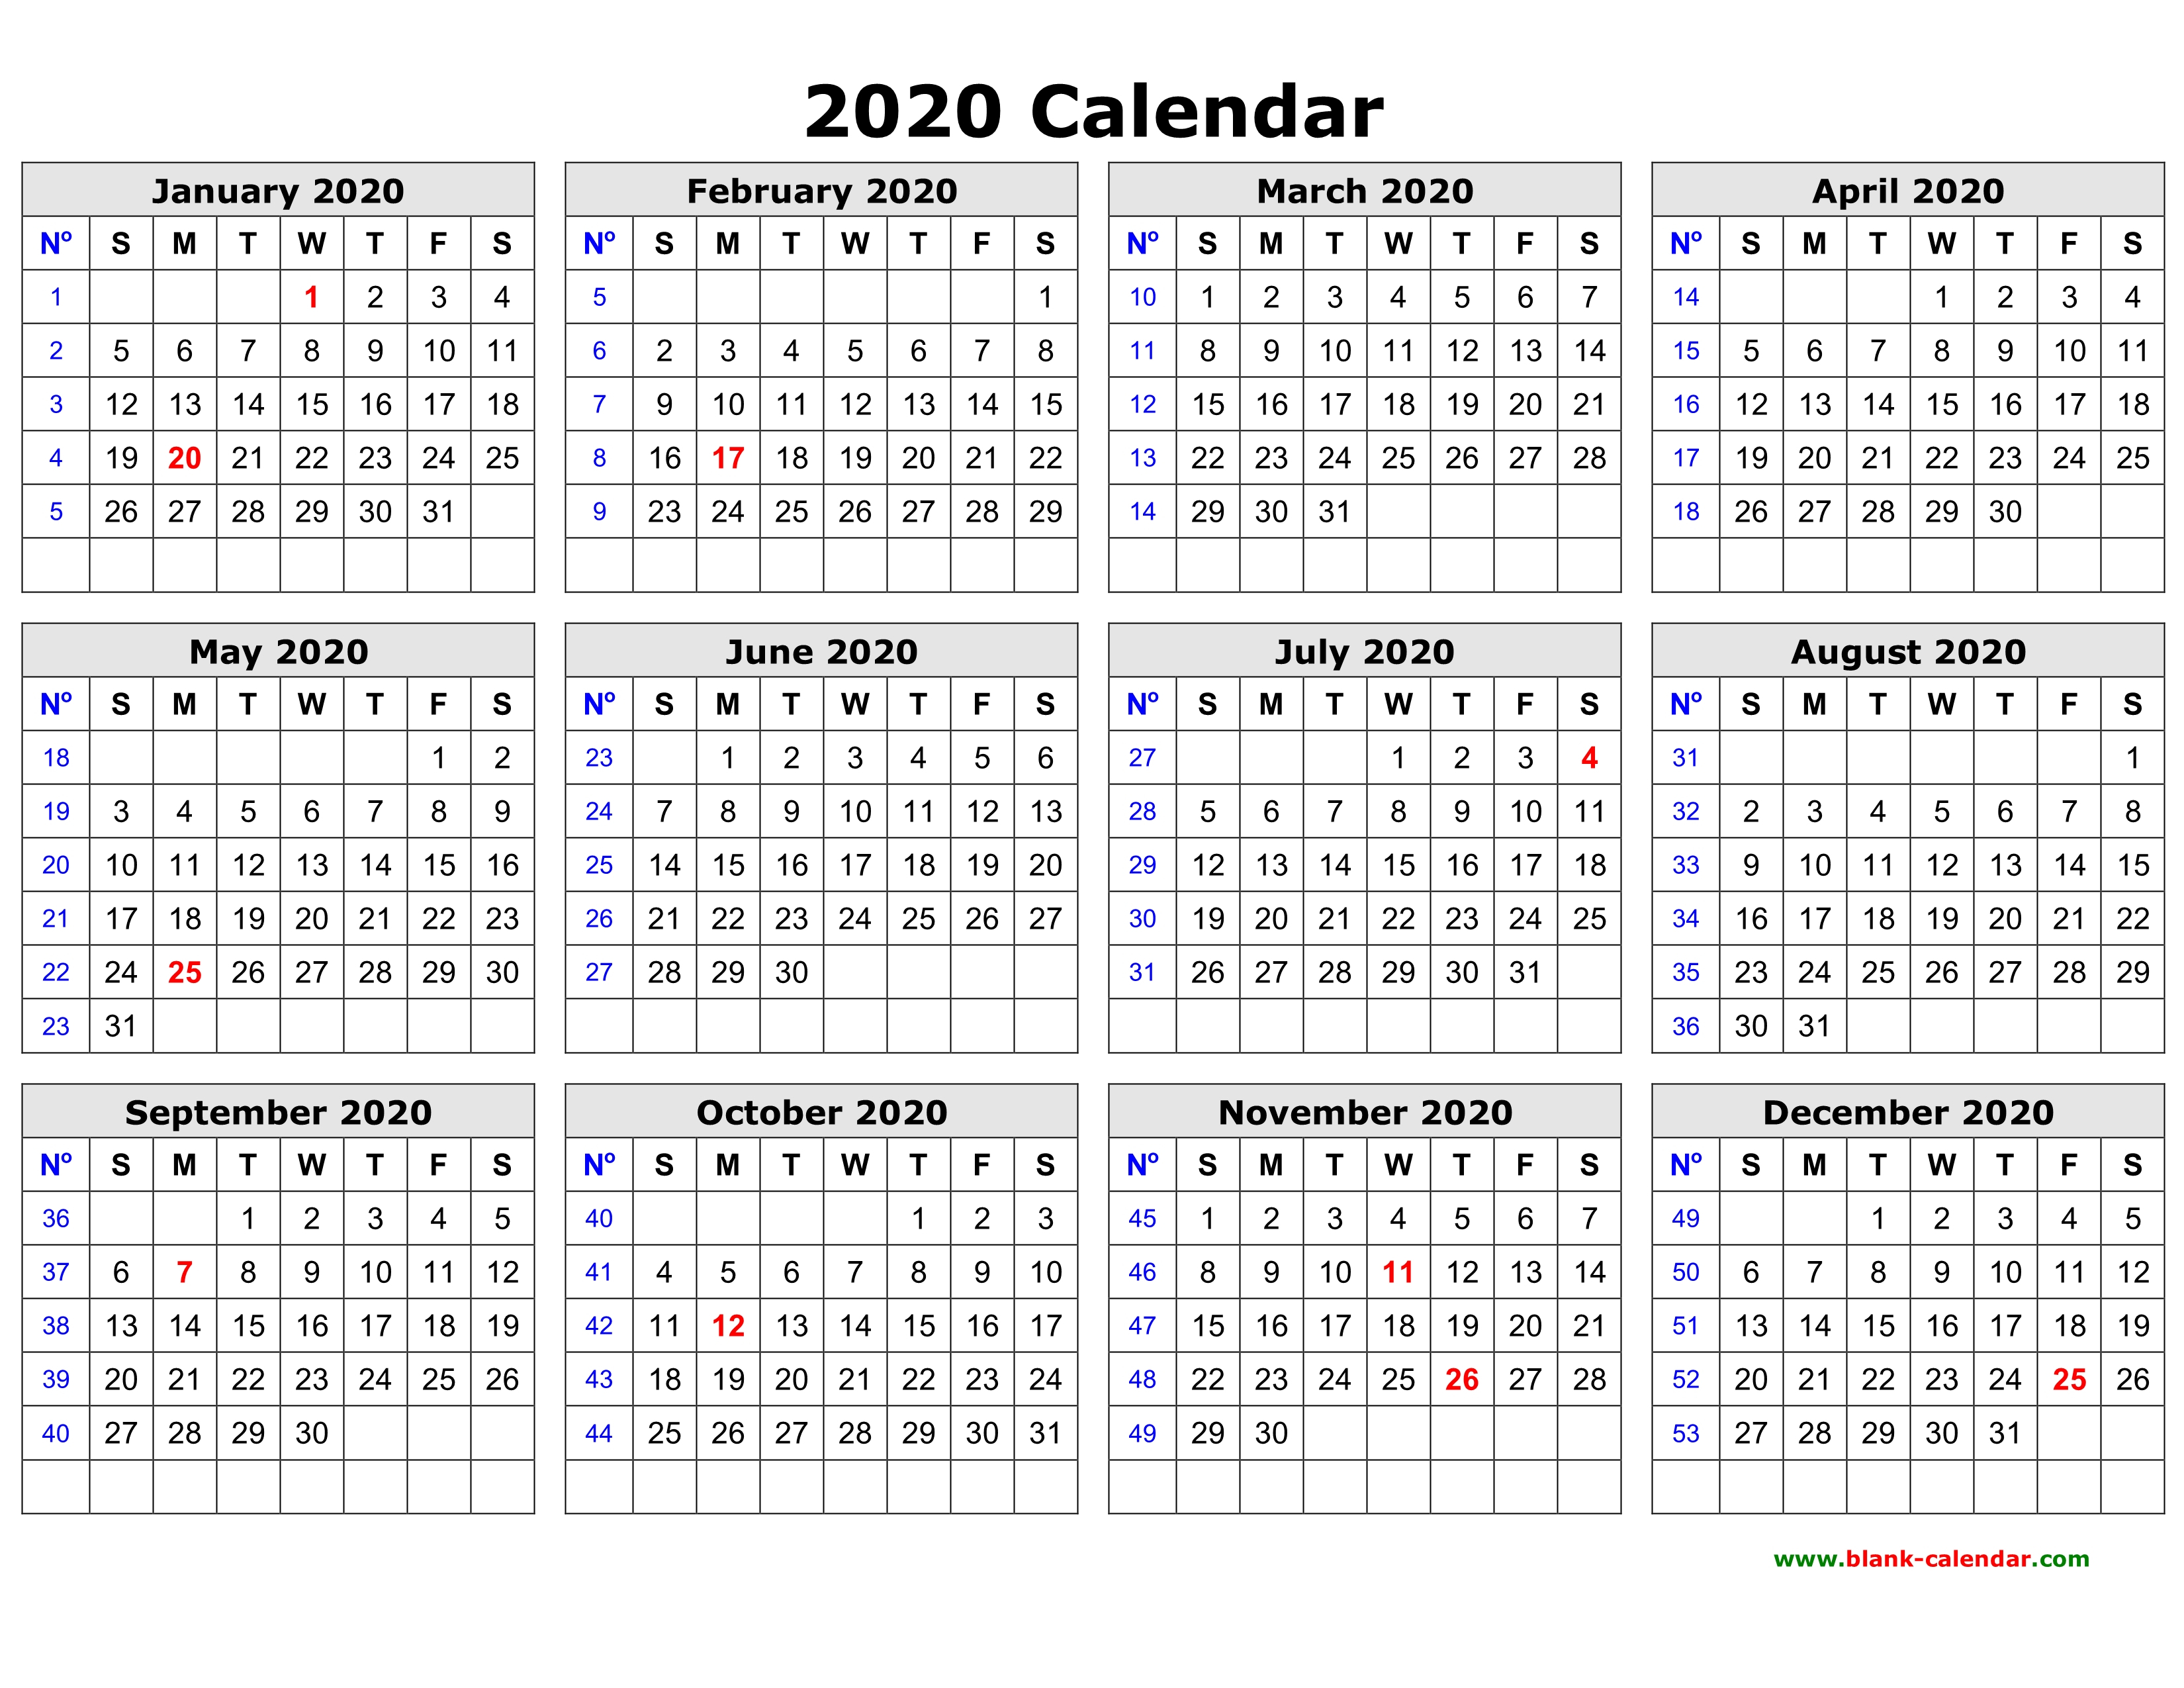 Free Download Printable Calendar 2020 In One Page, Clean Design. pertaining to 2020 Calendar Printable Free Pdf